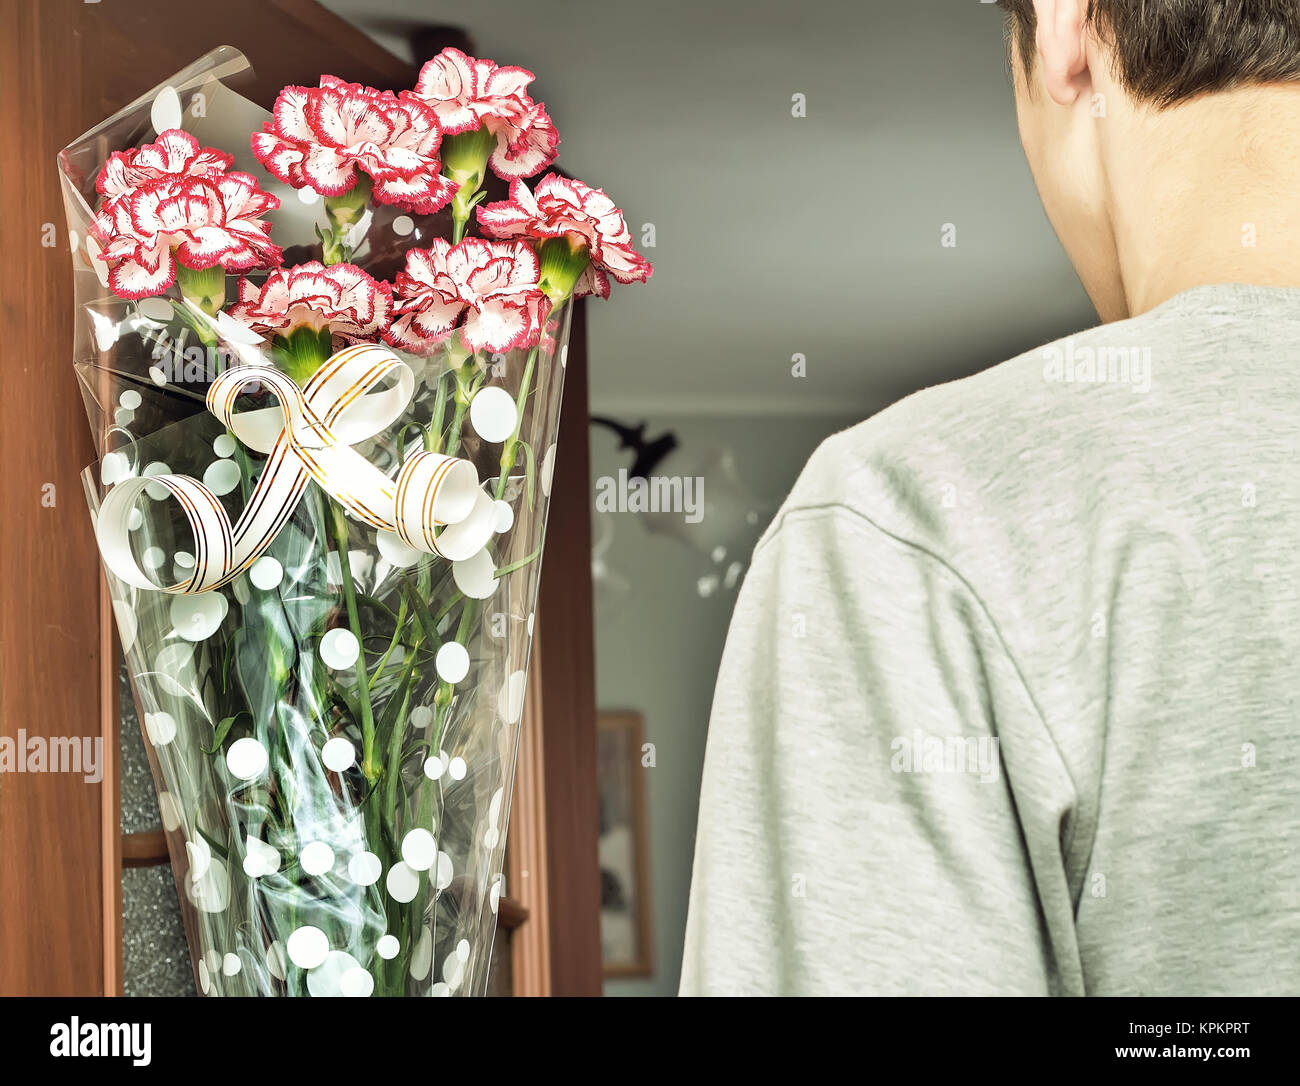 A young man with a bouquet of flowers in his hands. - Stock Image